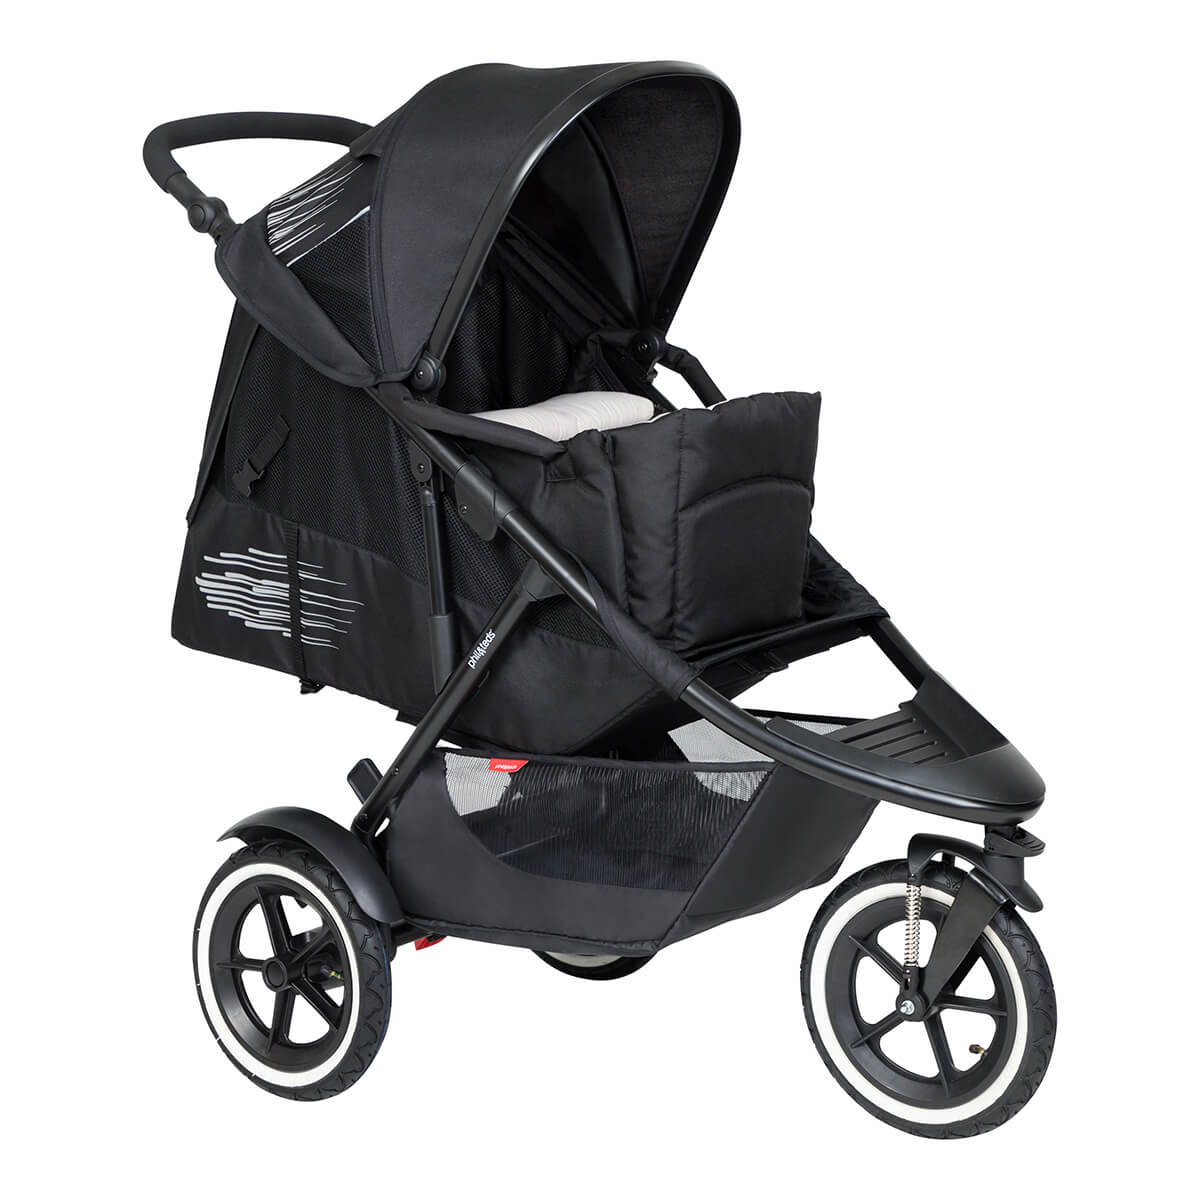 https://cdn.accentuate.io/4509866721377/19793938874538/philteds-sport-buggy-with-cocoon-full-recline-v1626485339966.jpg?1200x1200